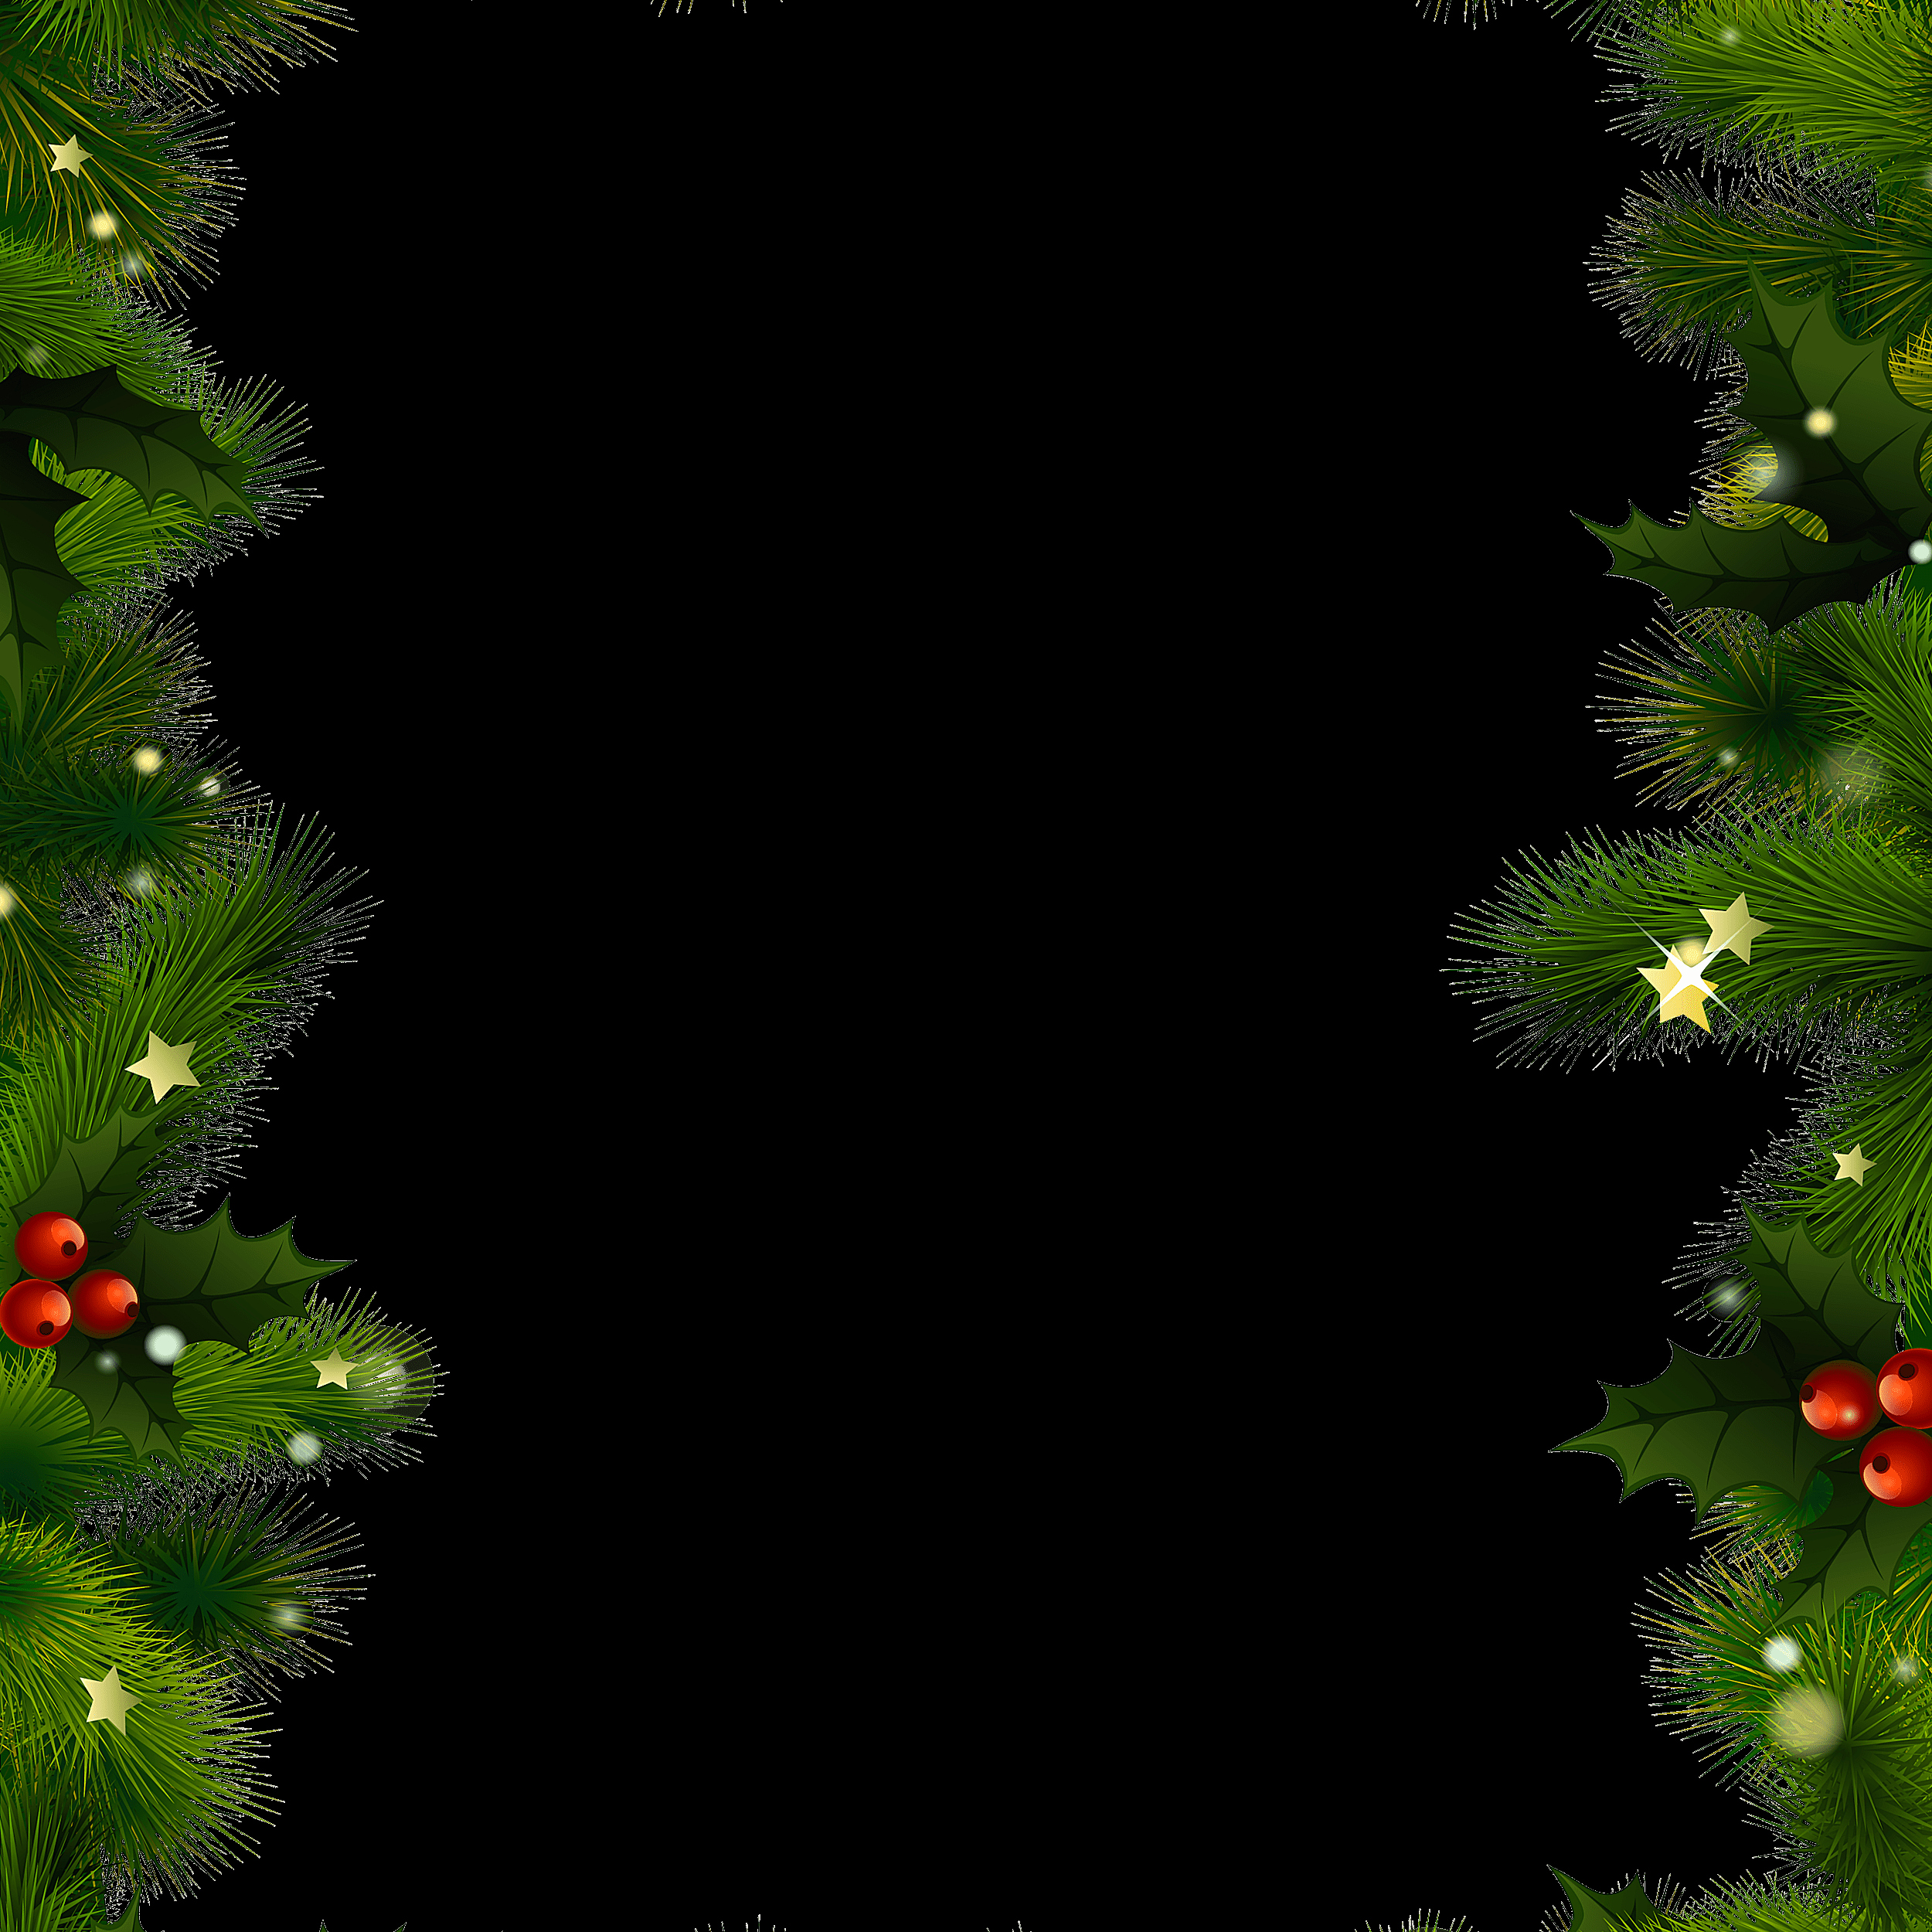 Christmas Background Images for Word Inspirational Free Christmas Borders and Frames